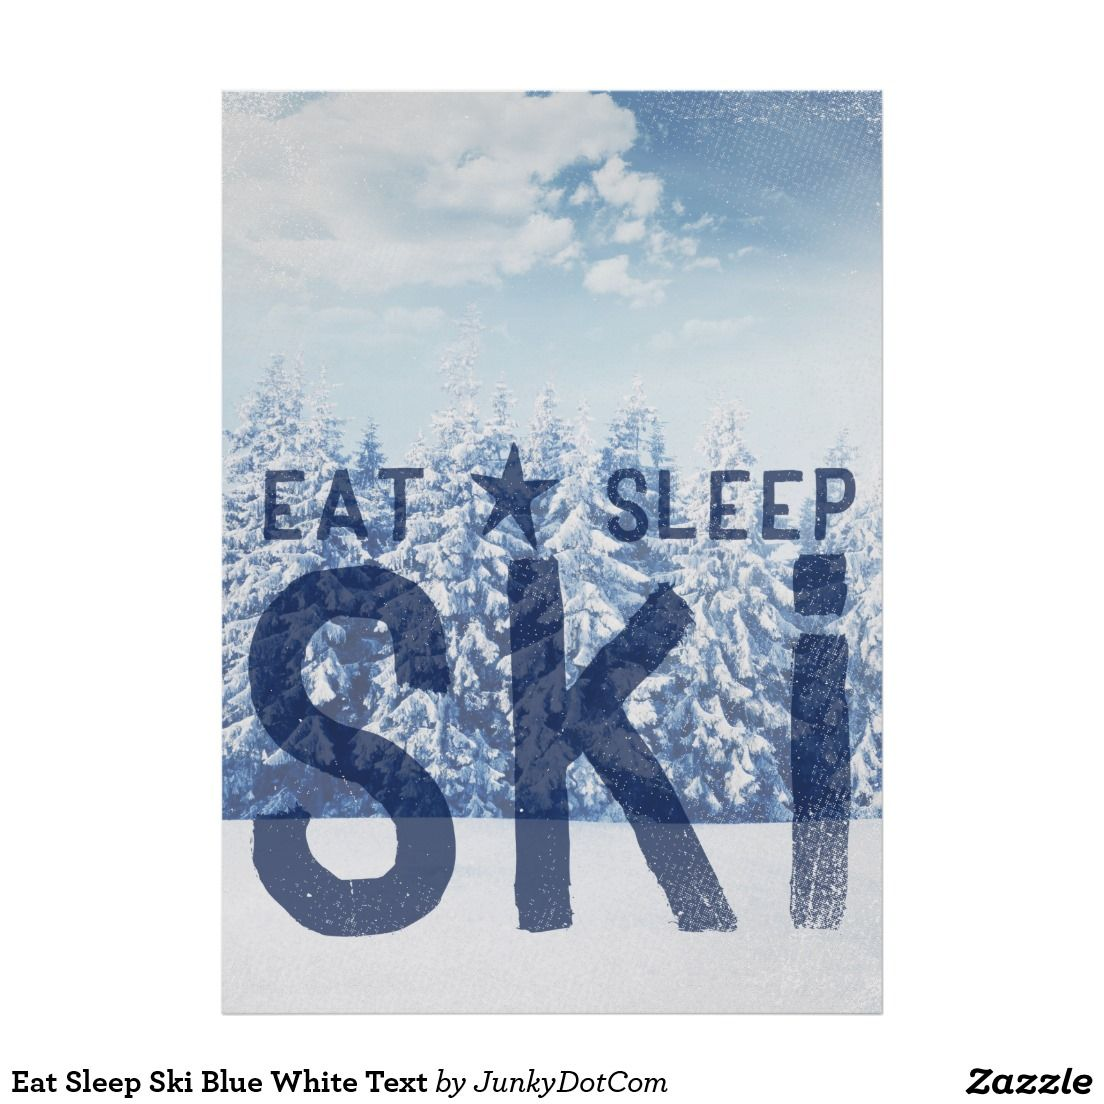 Zazzle poster design - Eat Sleep Ski Blue White Text Poster Zazzle Junkydotcom Aug 18 2016